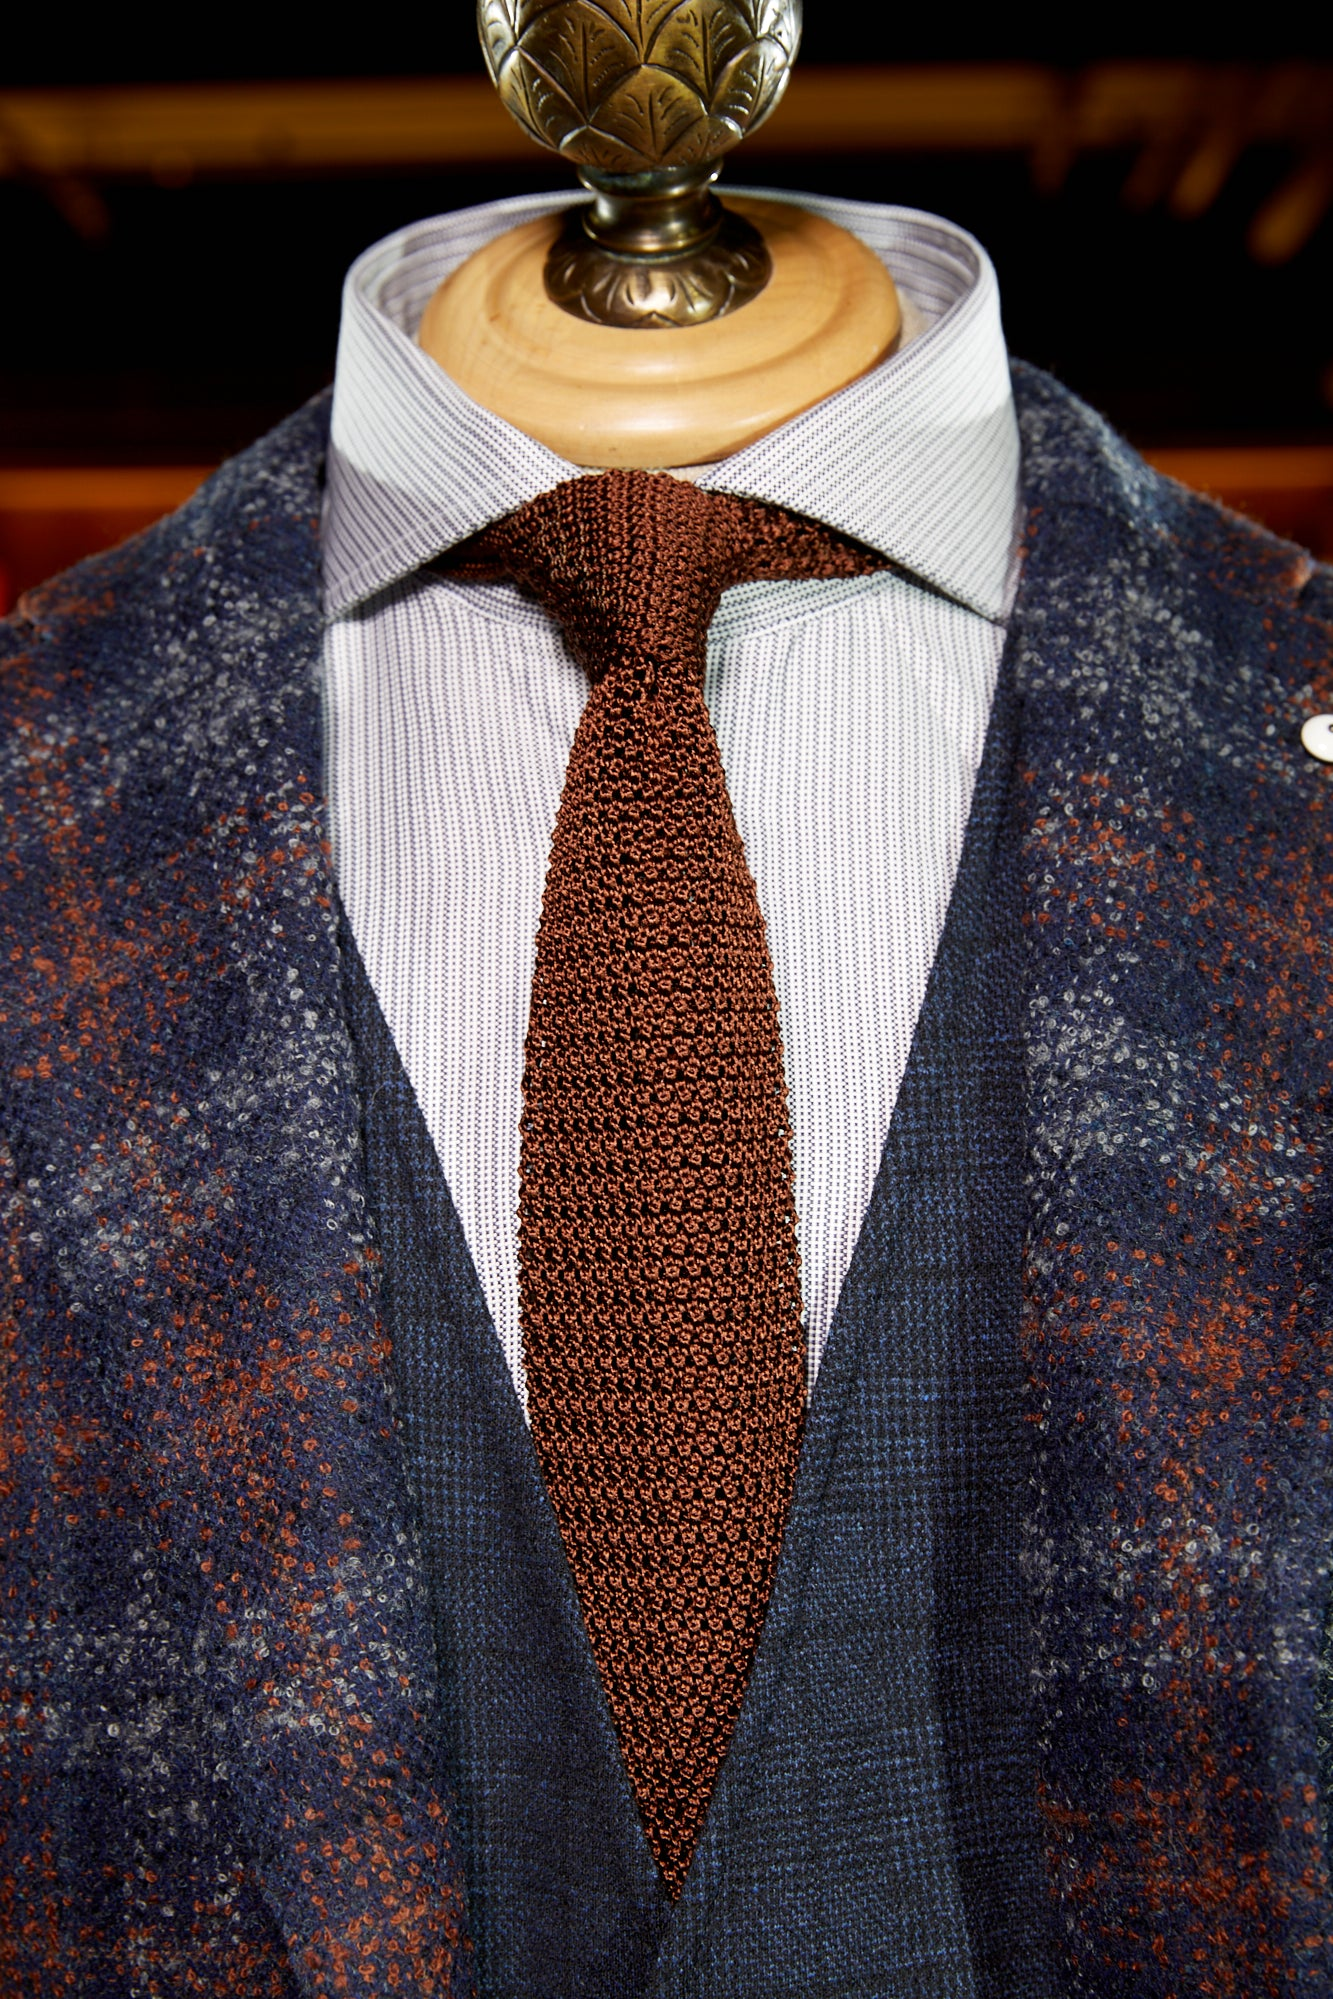 Dion Knit Tie - LALONDE's